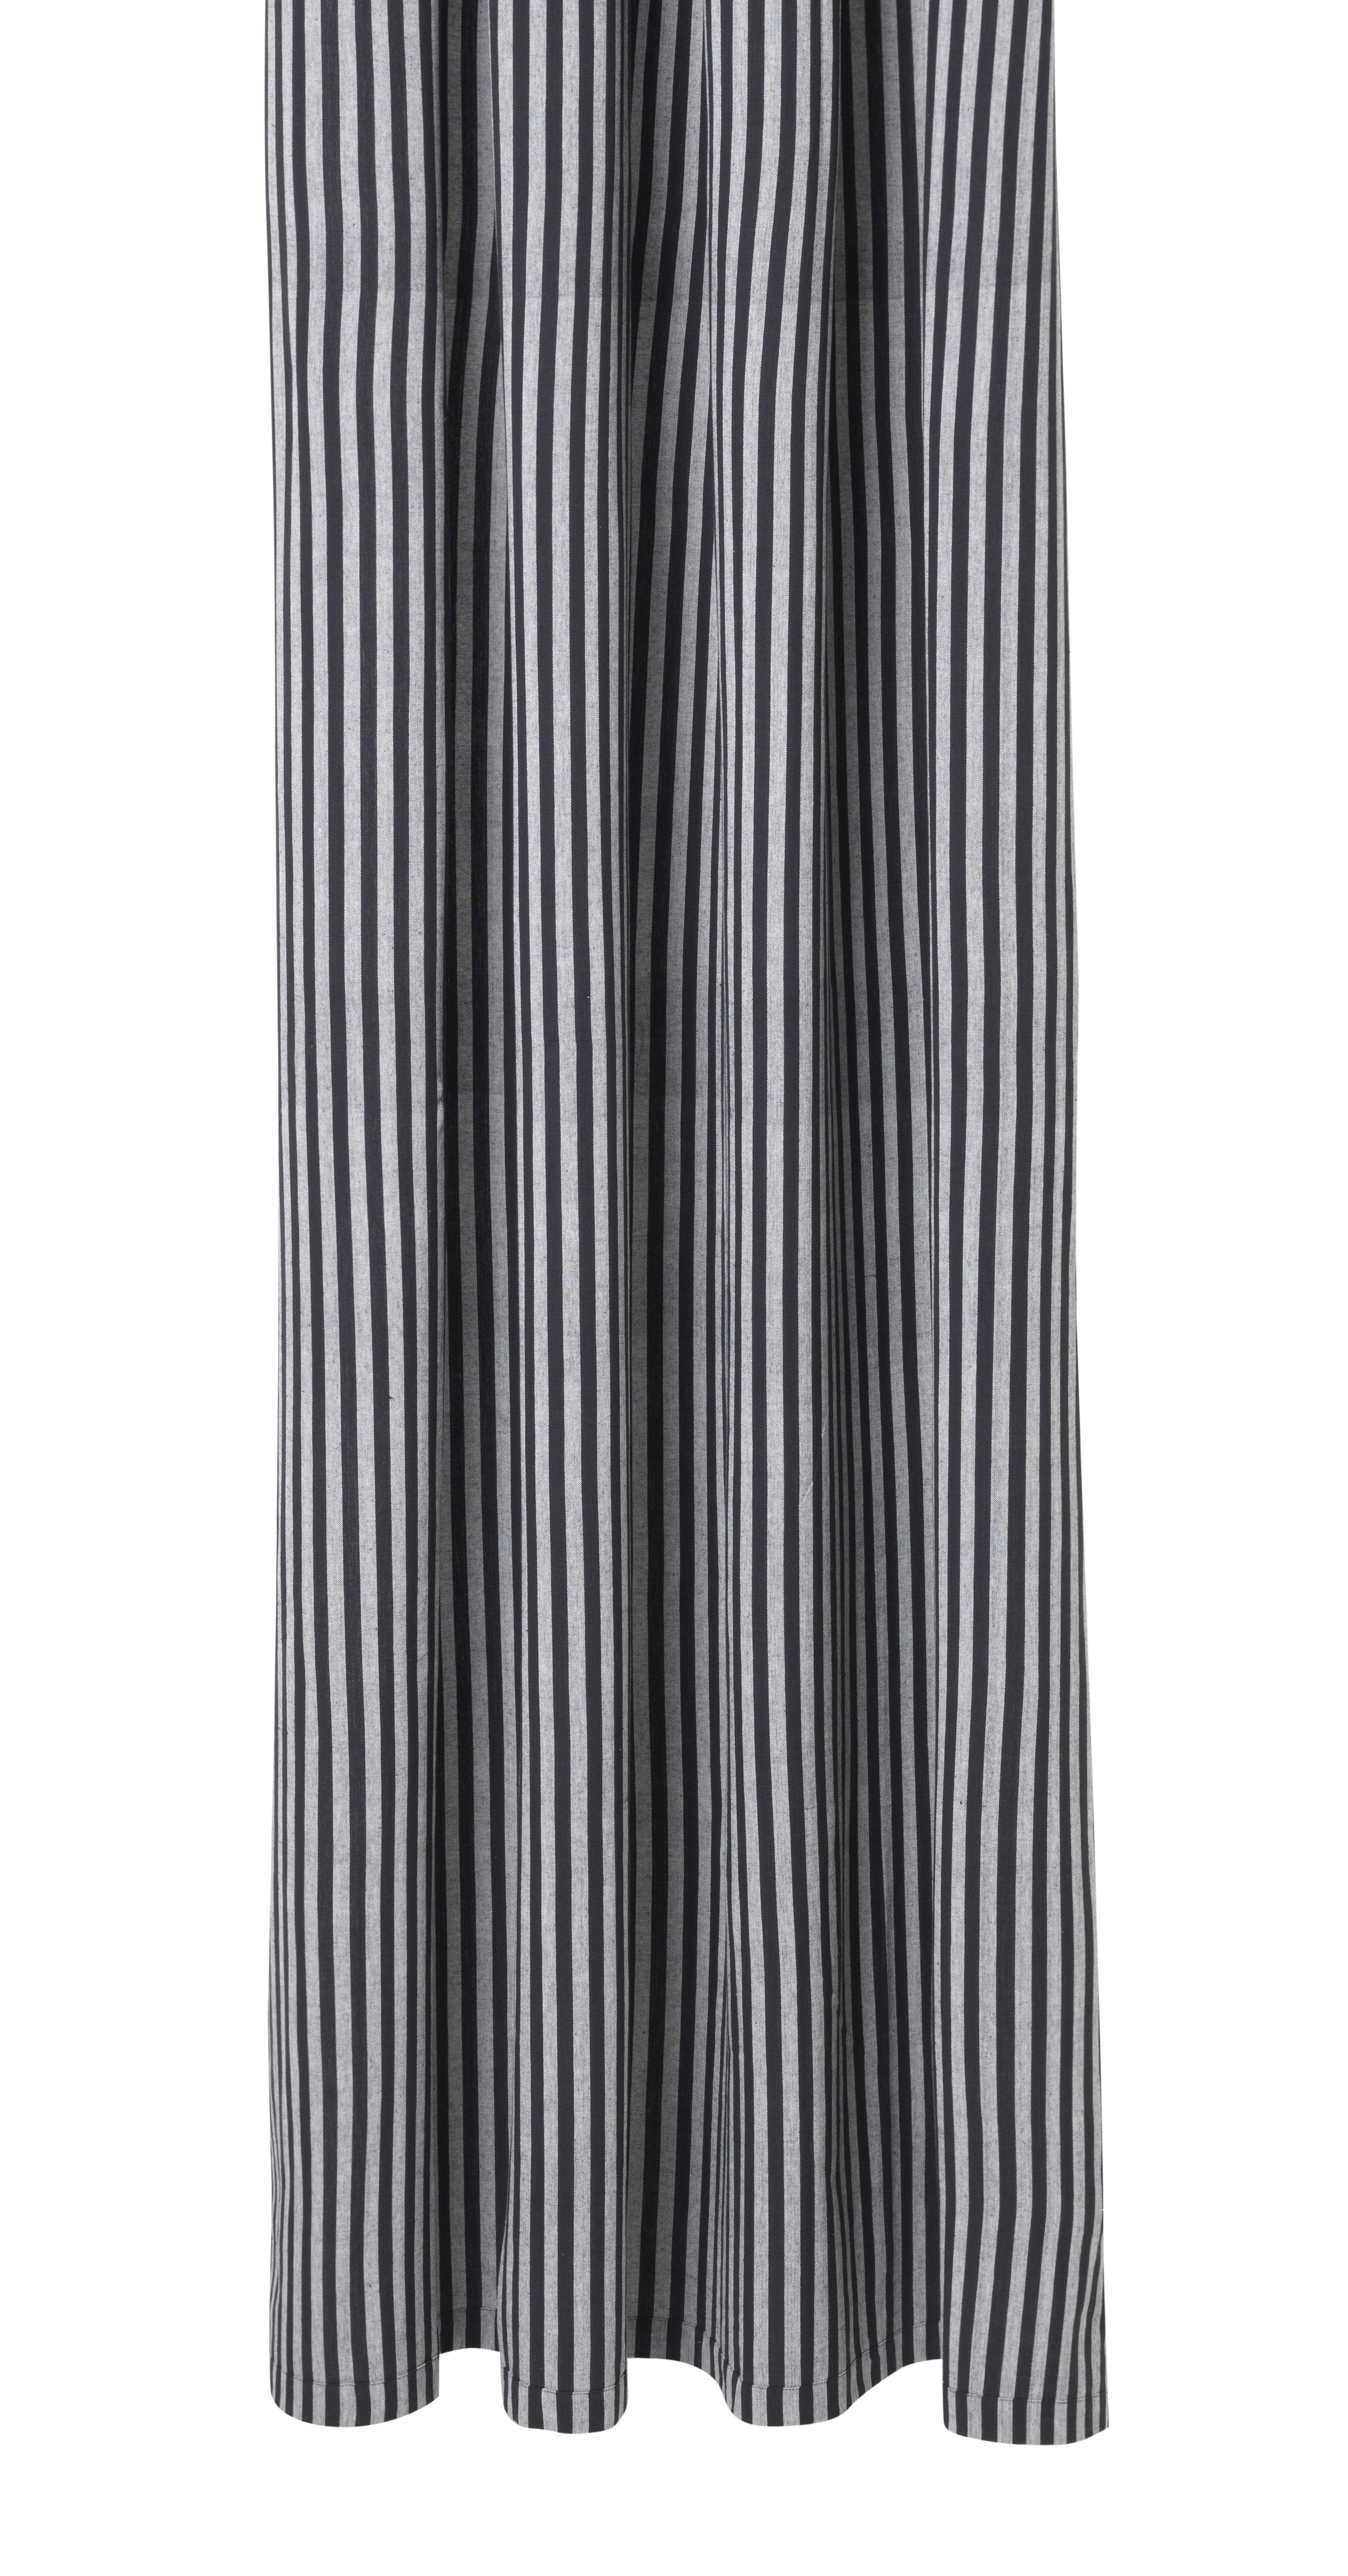 Accessories - Bathroom Accessories - Chambray Striped Shower curtain - / 160 x H 205 cm - Coated cotton by Ferm Living - Striped / Grey & black - Coated cotton